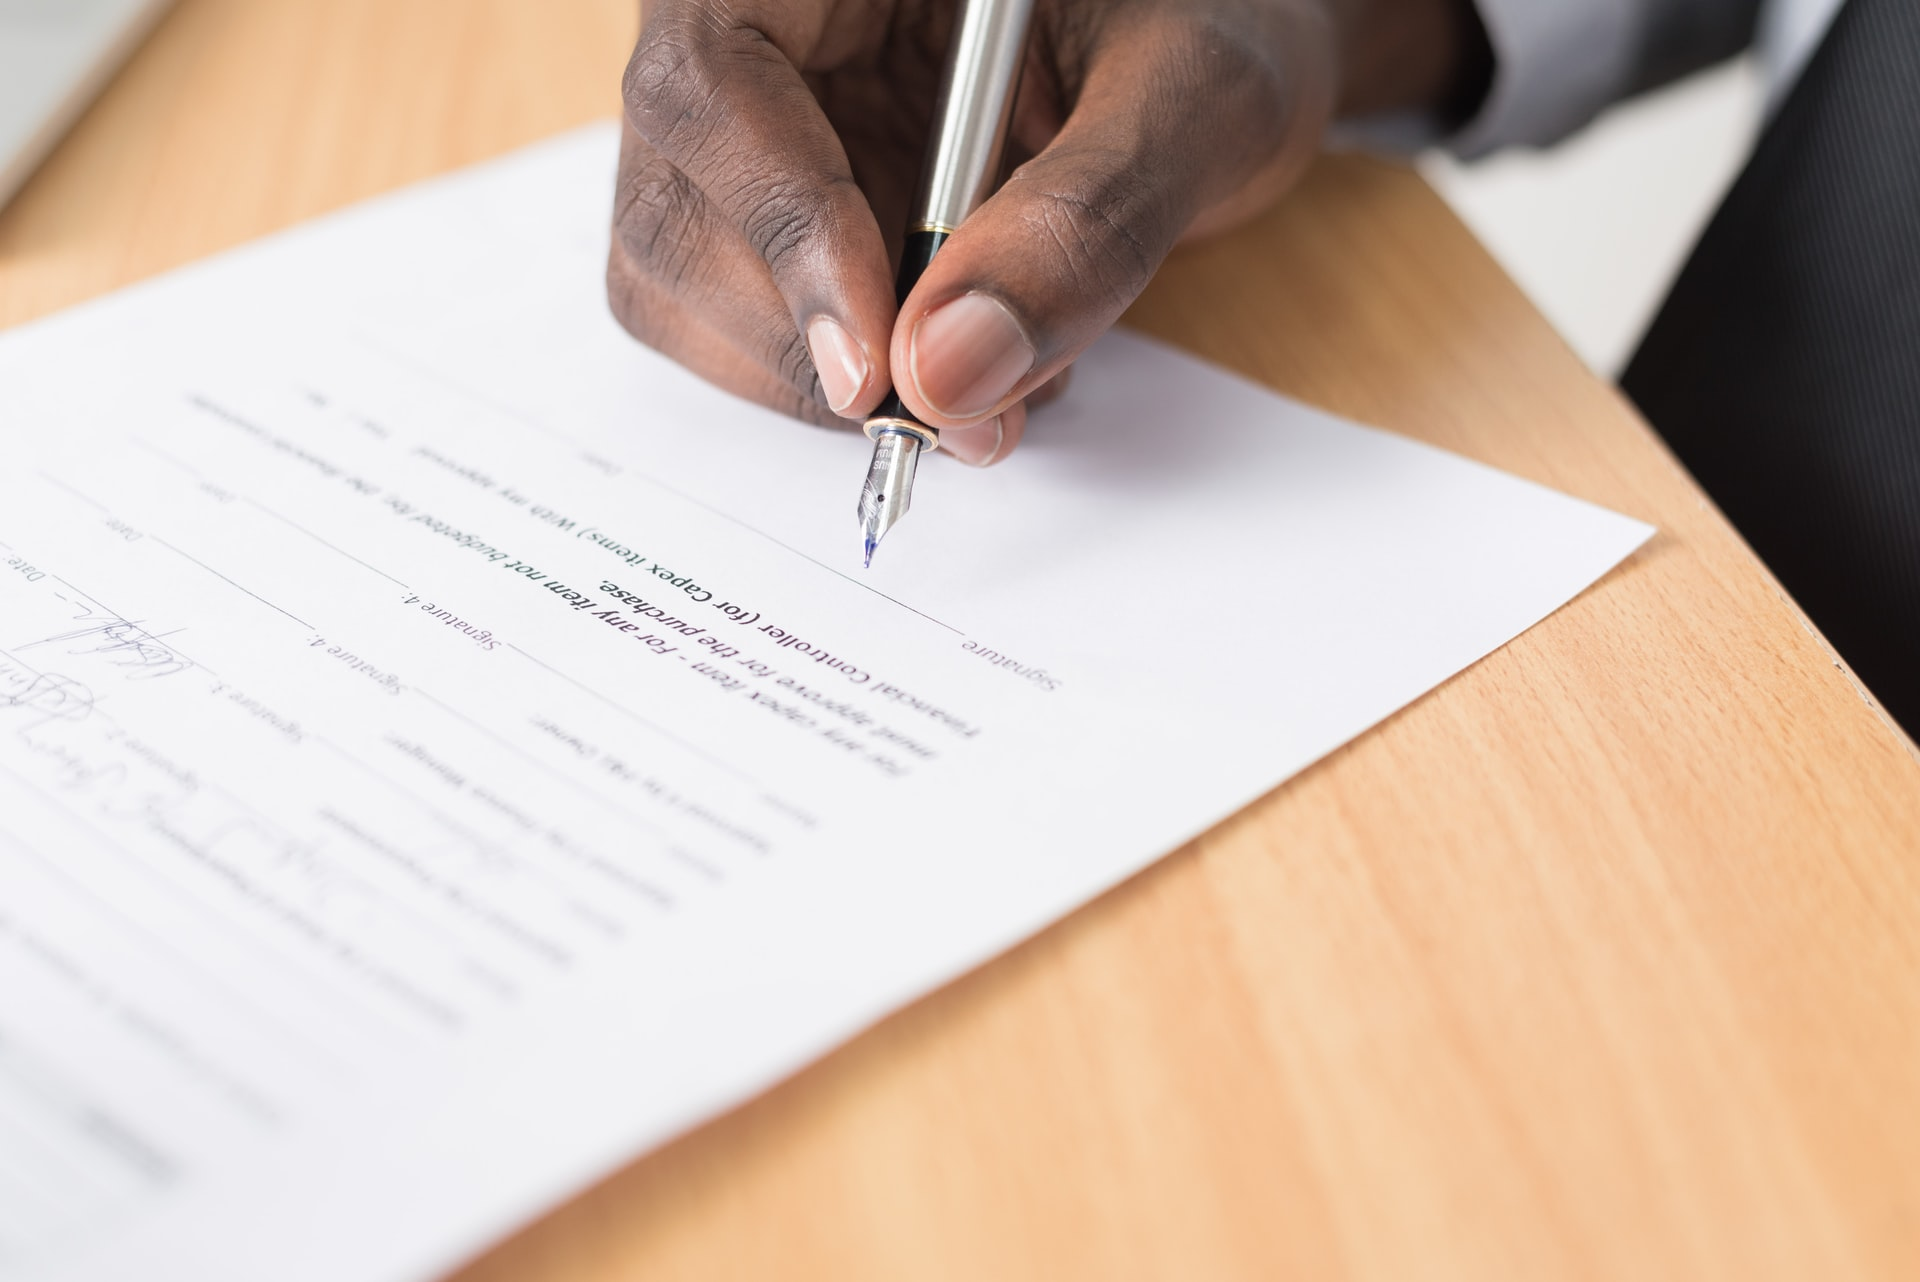 Terminating listing agreements in Arizona requires that you take several steps. Here are some tips to get you started in the right direction